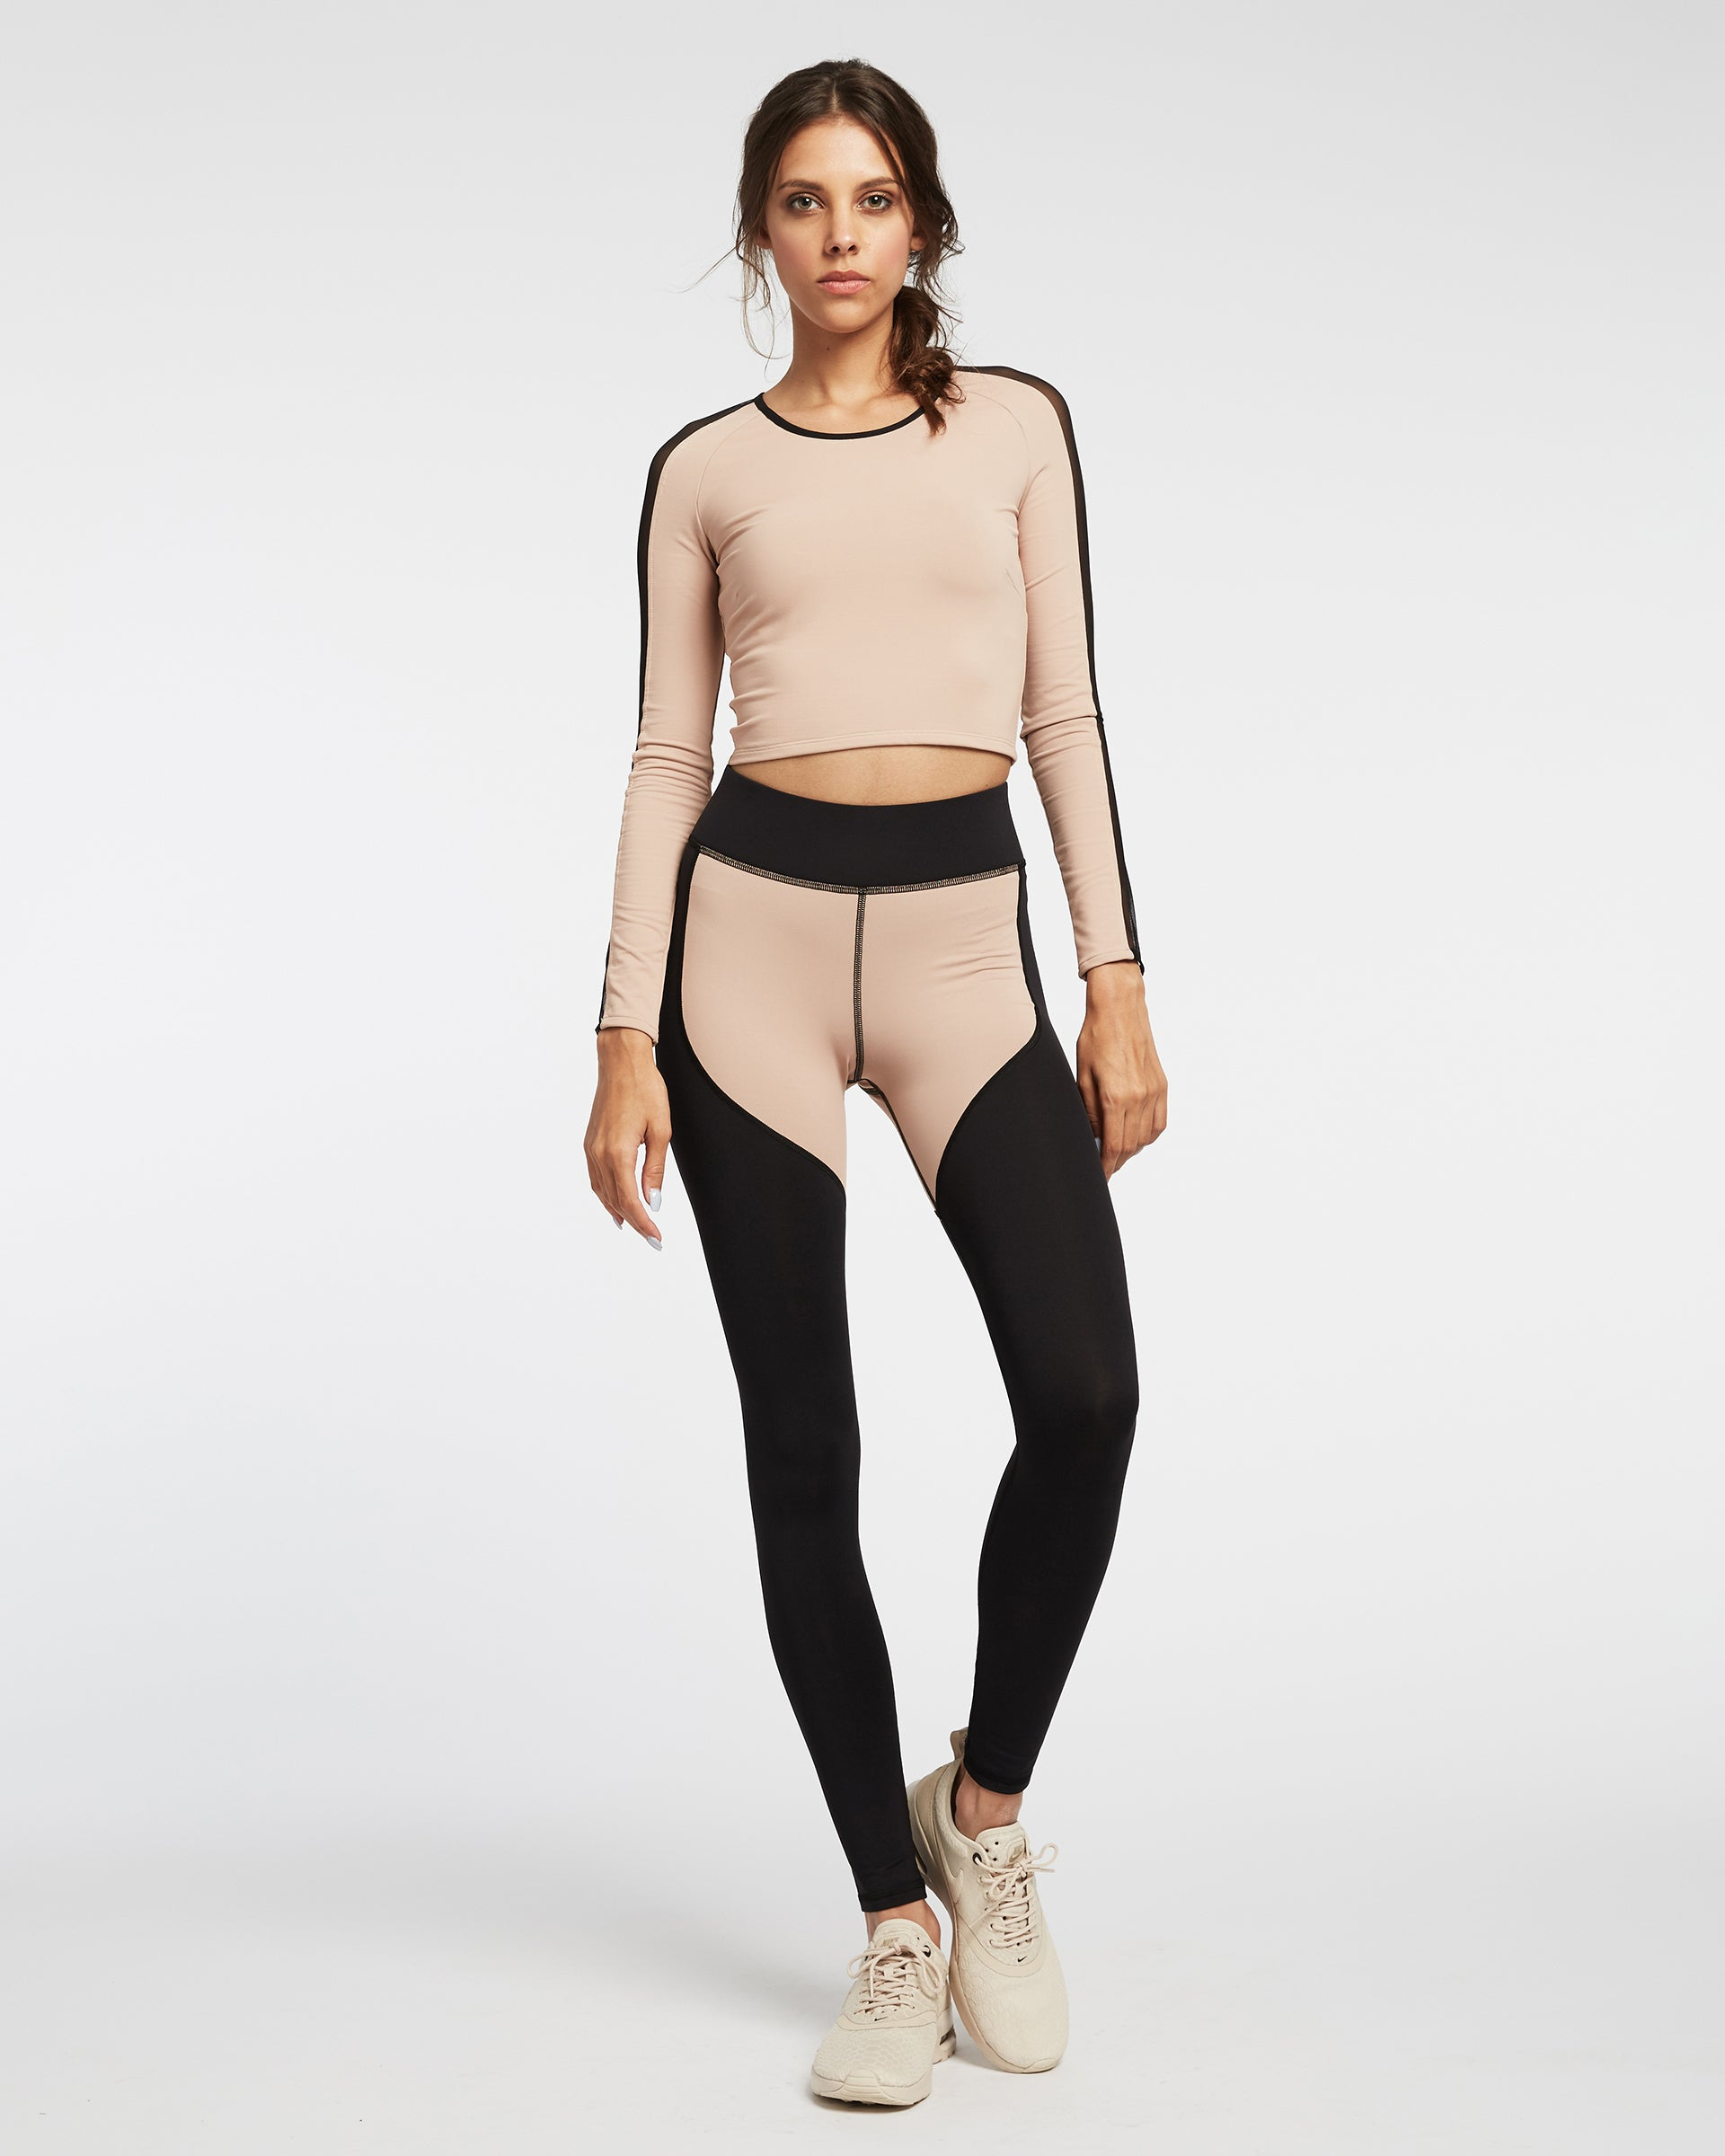 bolt-crop-top-nude-pink